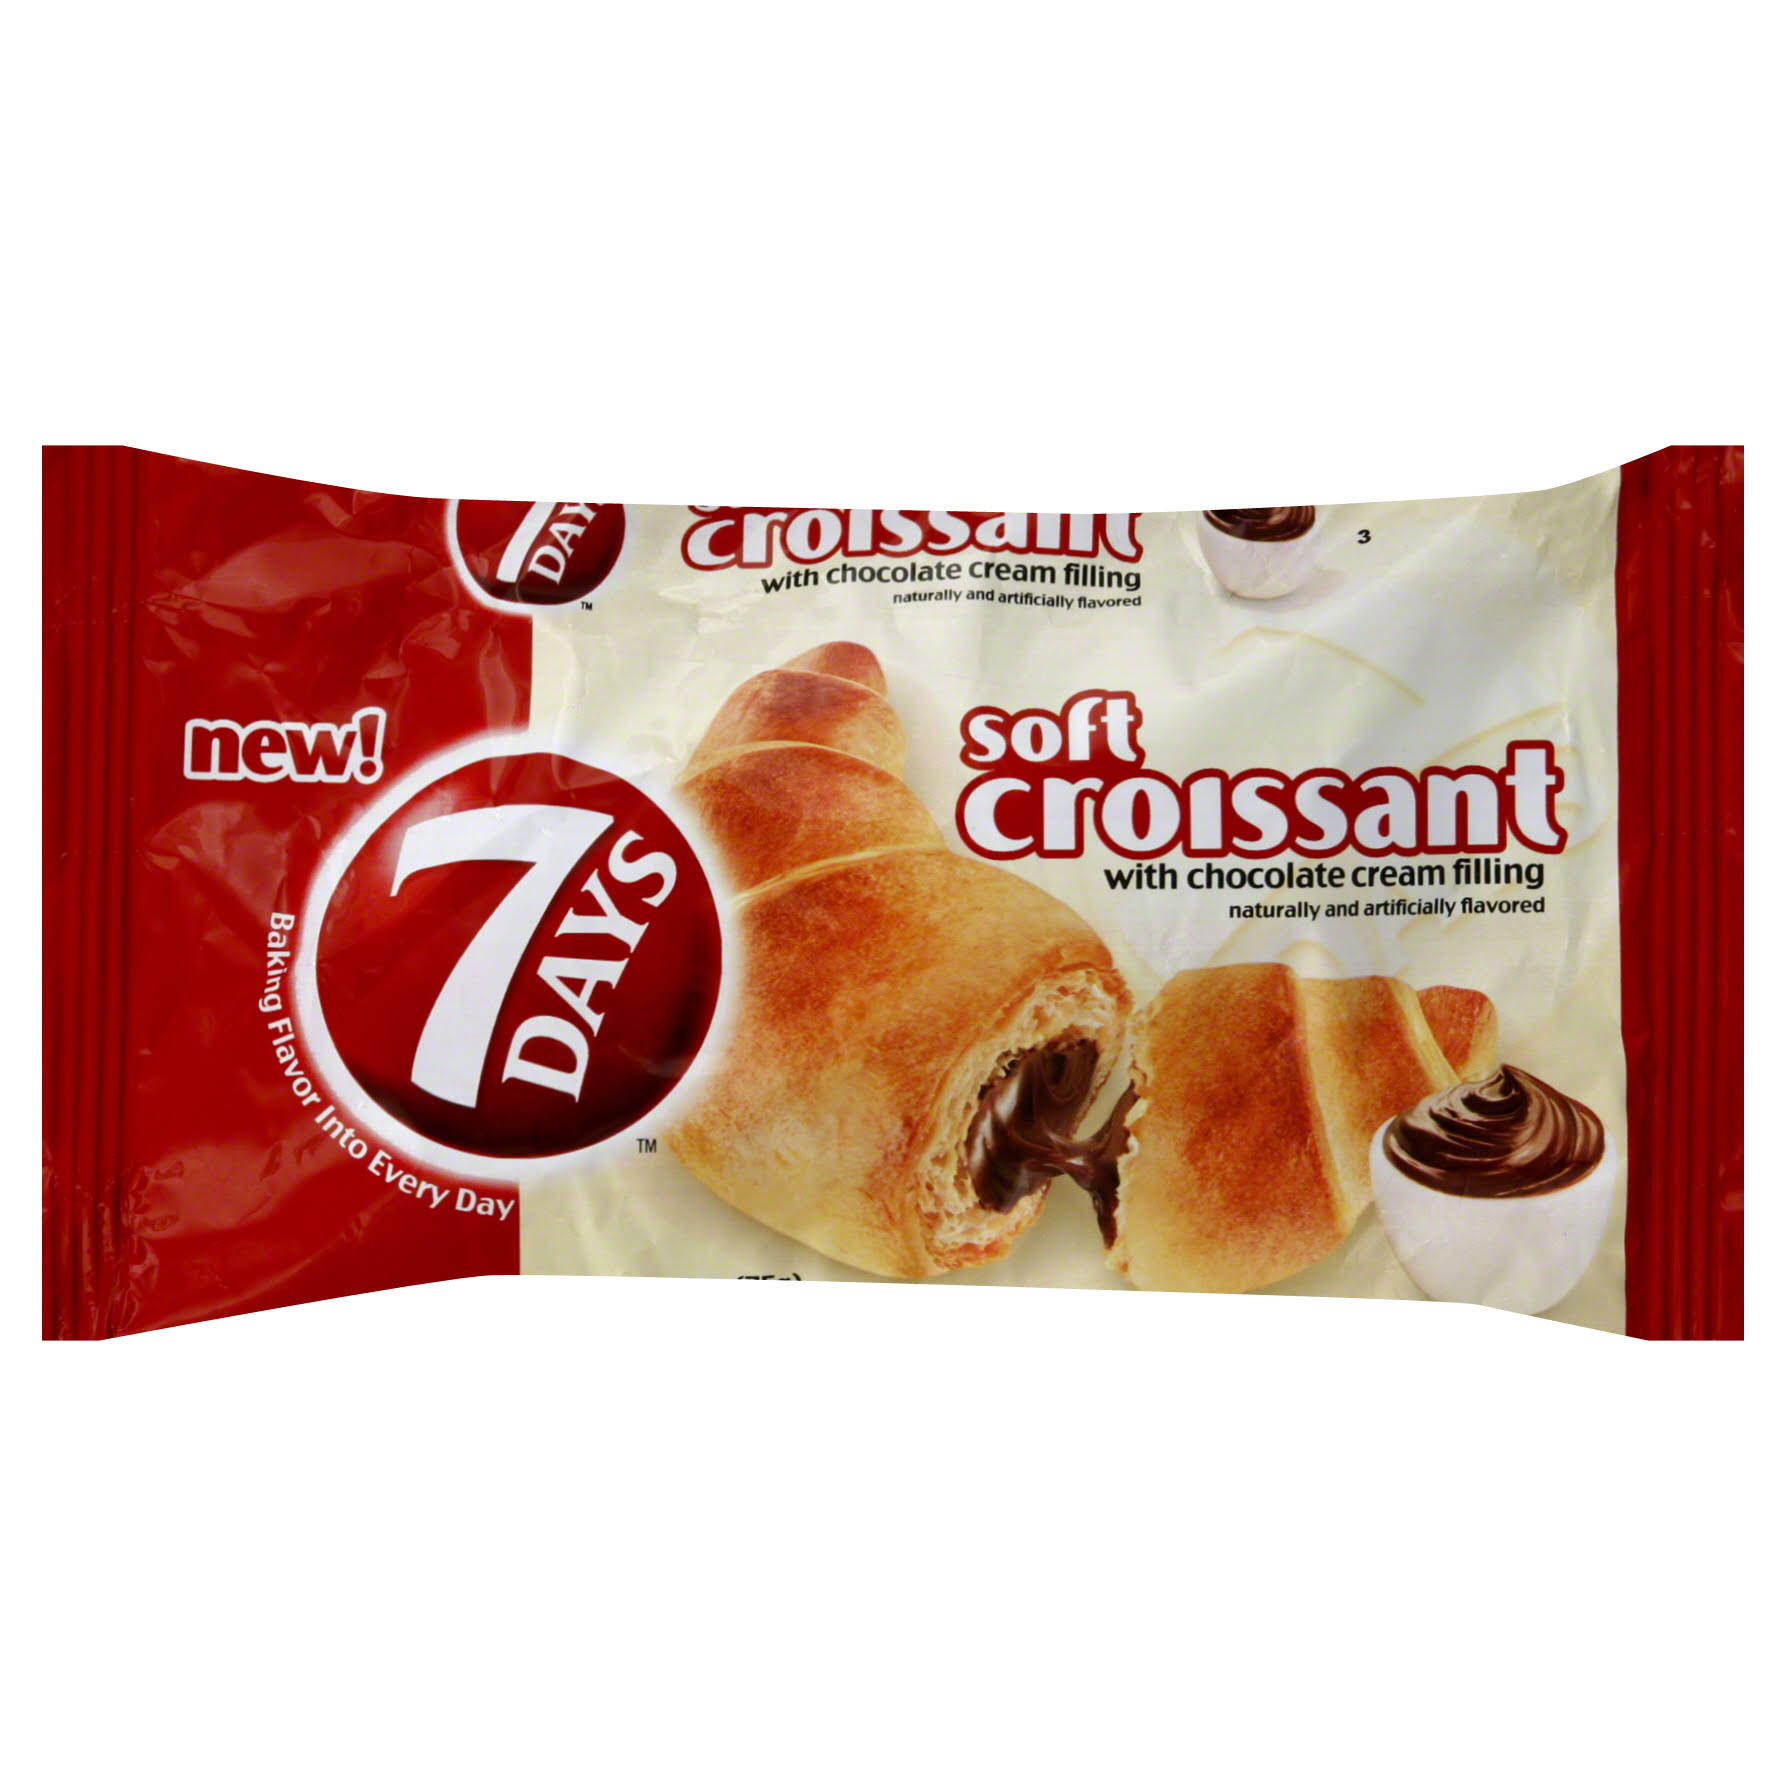 7 Days Soft Croissant - Chocolate Cream Filling